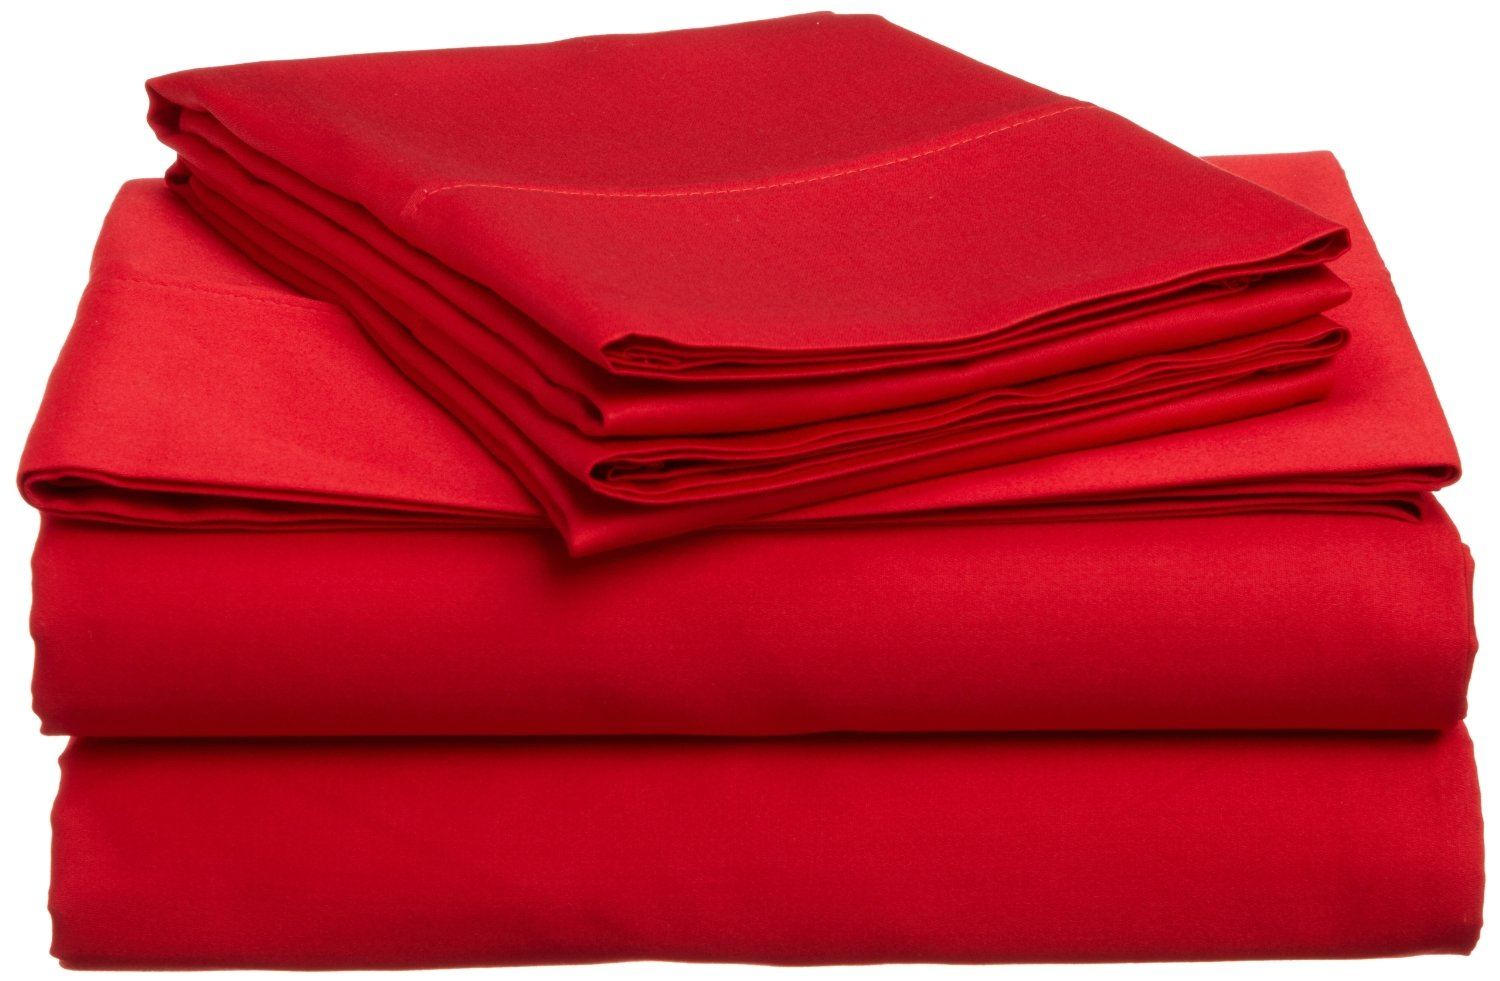 Bed Life Solid Red - Top / Flat Sheet With Matching Pillow Cases ( Set of 3 Pack ) 500 TC Ultra Soft Sizes ( Full XL ) Made By Galaxy's Linen